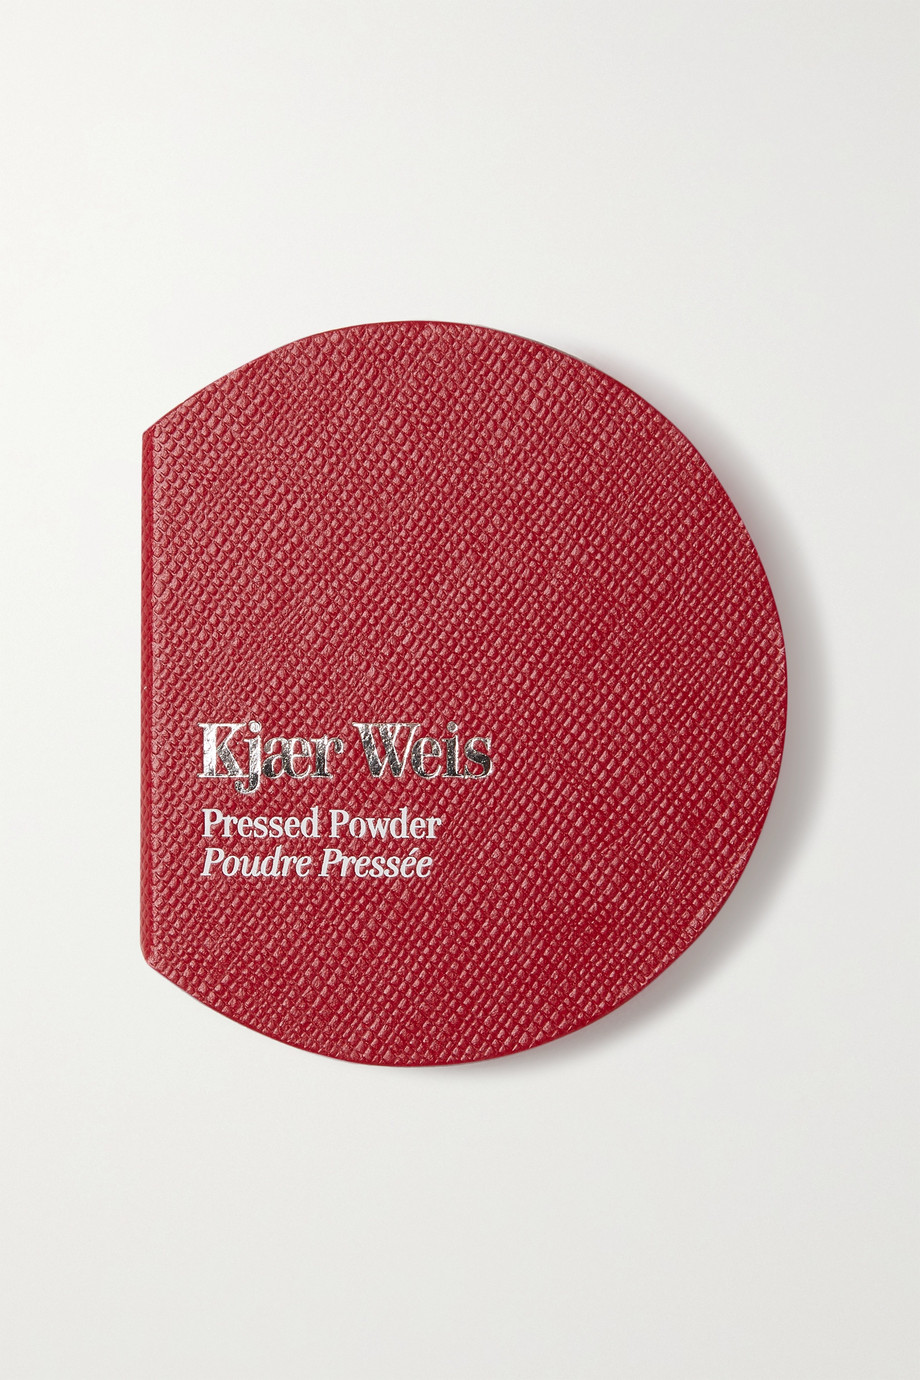 KJAER WEIS Red Edition Refillable Compact - Pressed Powder